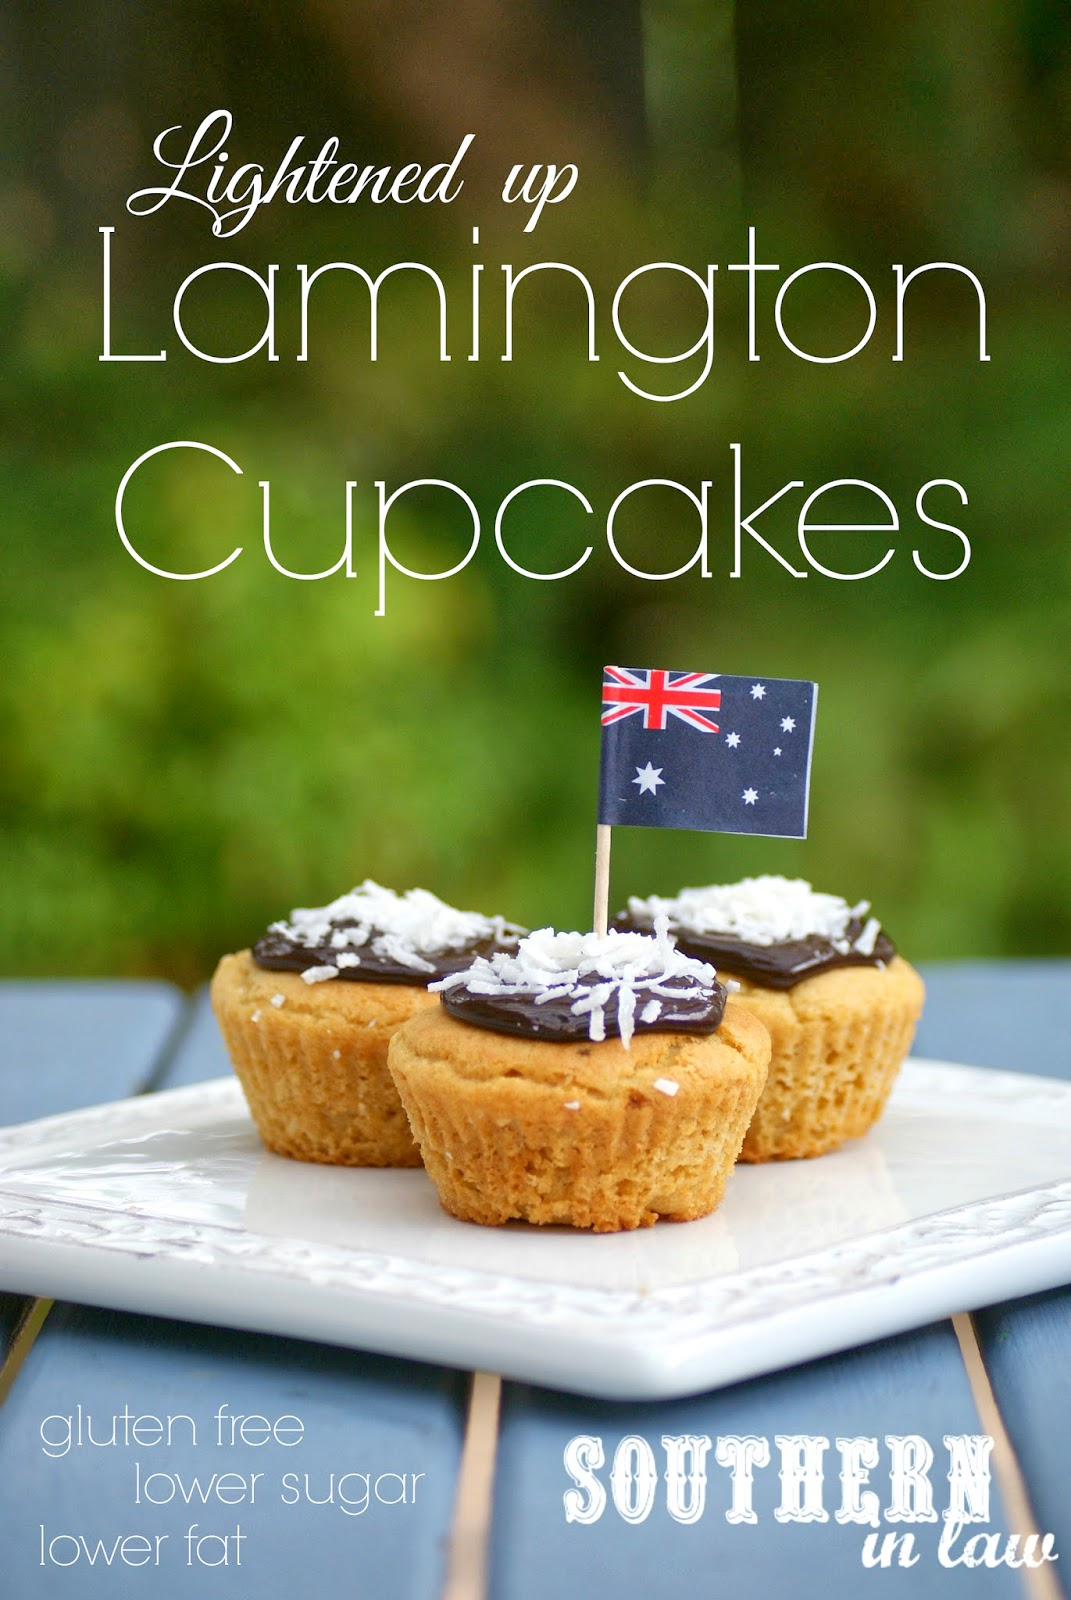 Lightened Up Lamington Cupcakes - Low Fat Butter Cake Recipe - Gluten Free, Low Sugar